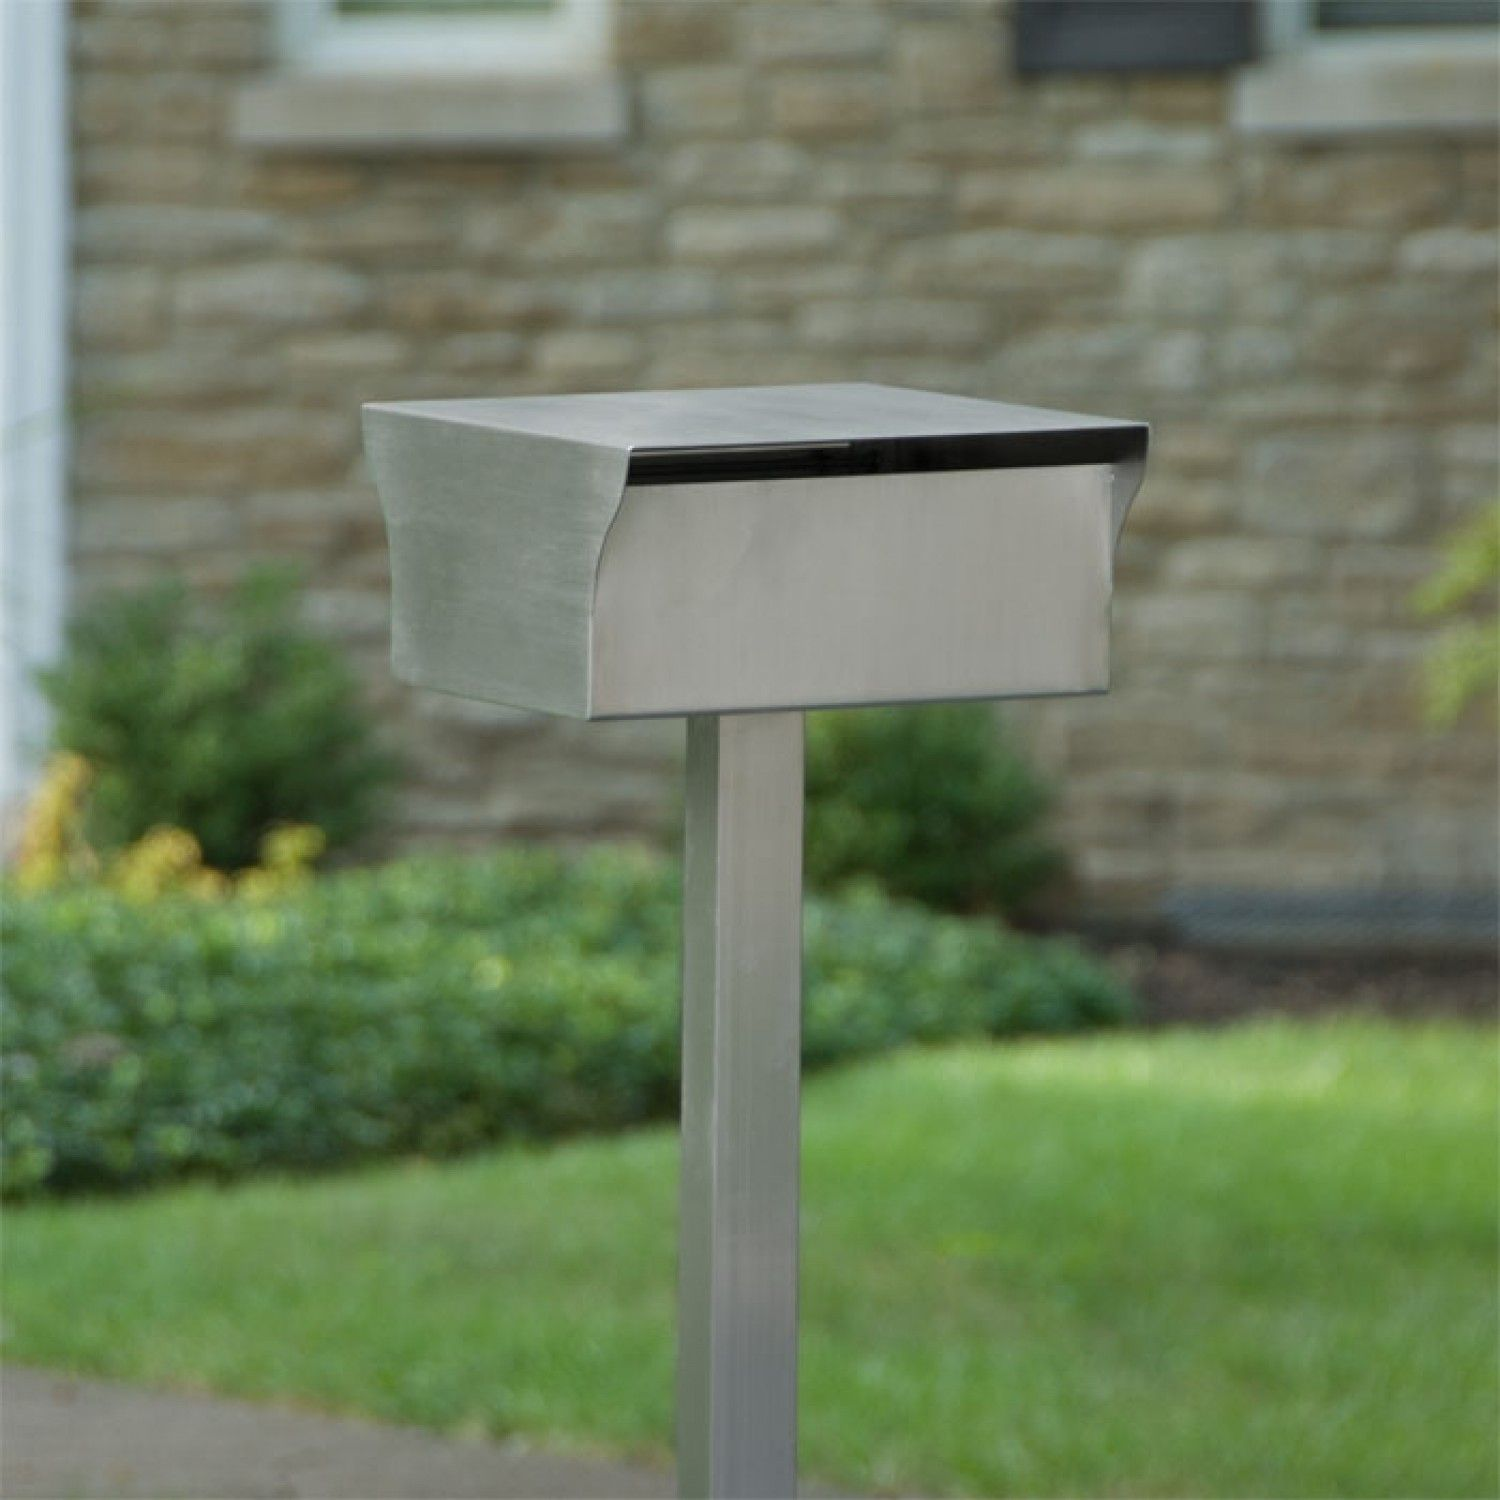 Bremerton Stainless Steel Mailbox And Post Set Brushed Stainless